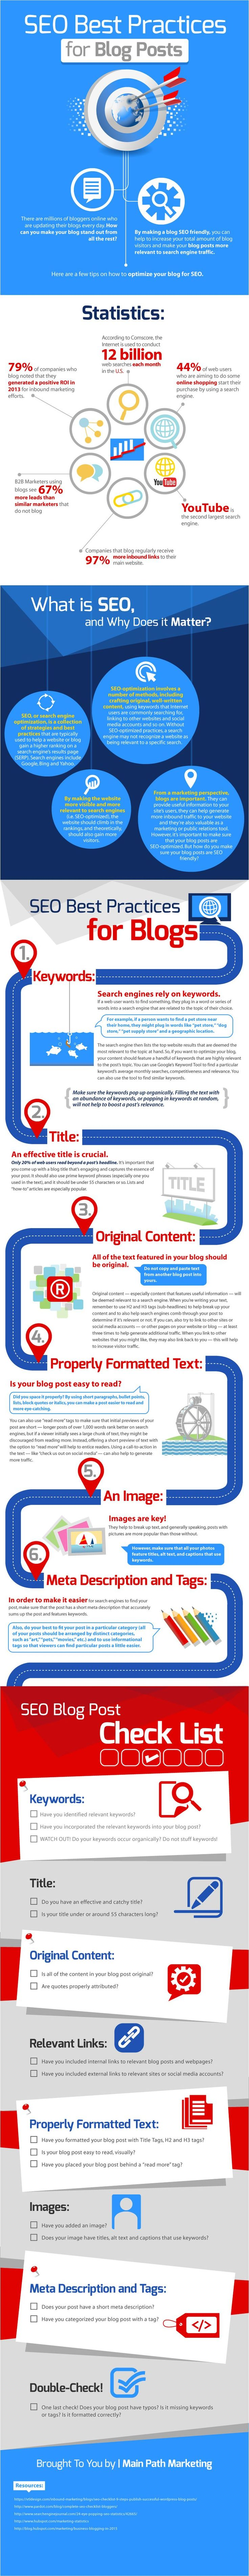 What Are 17 Steps For SEO Best Practice For Blog Posts? #infographic